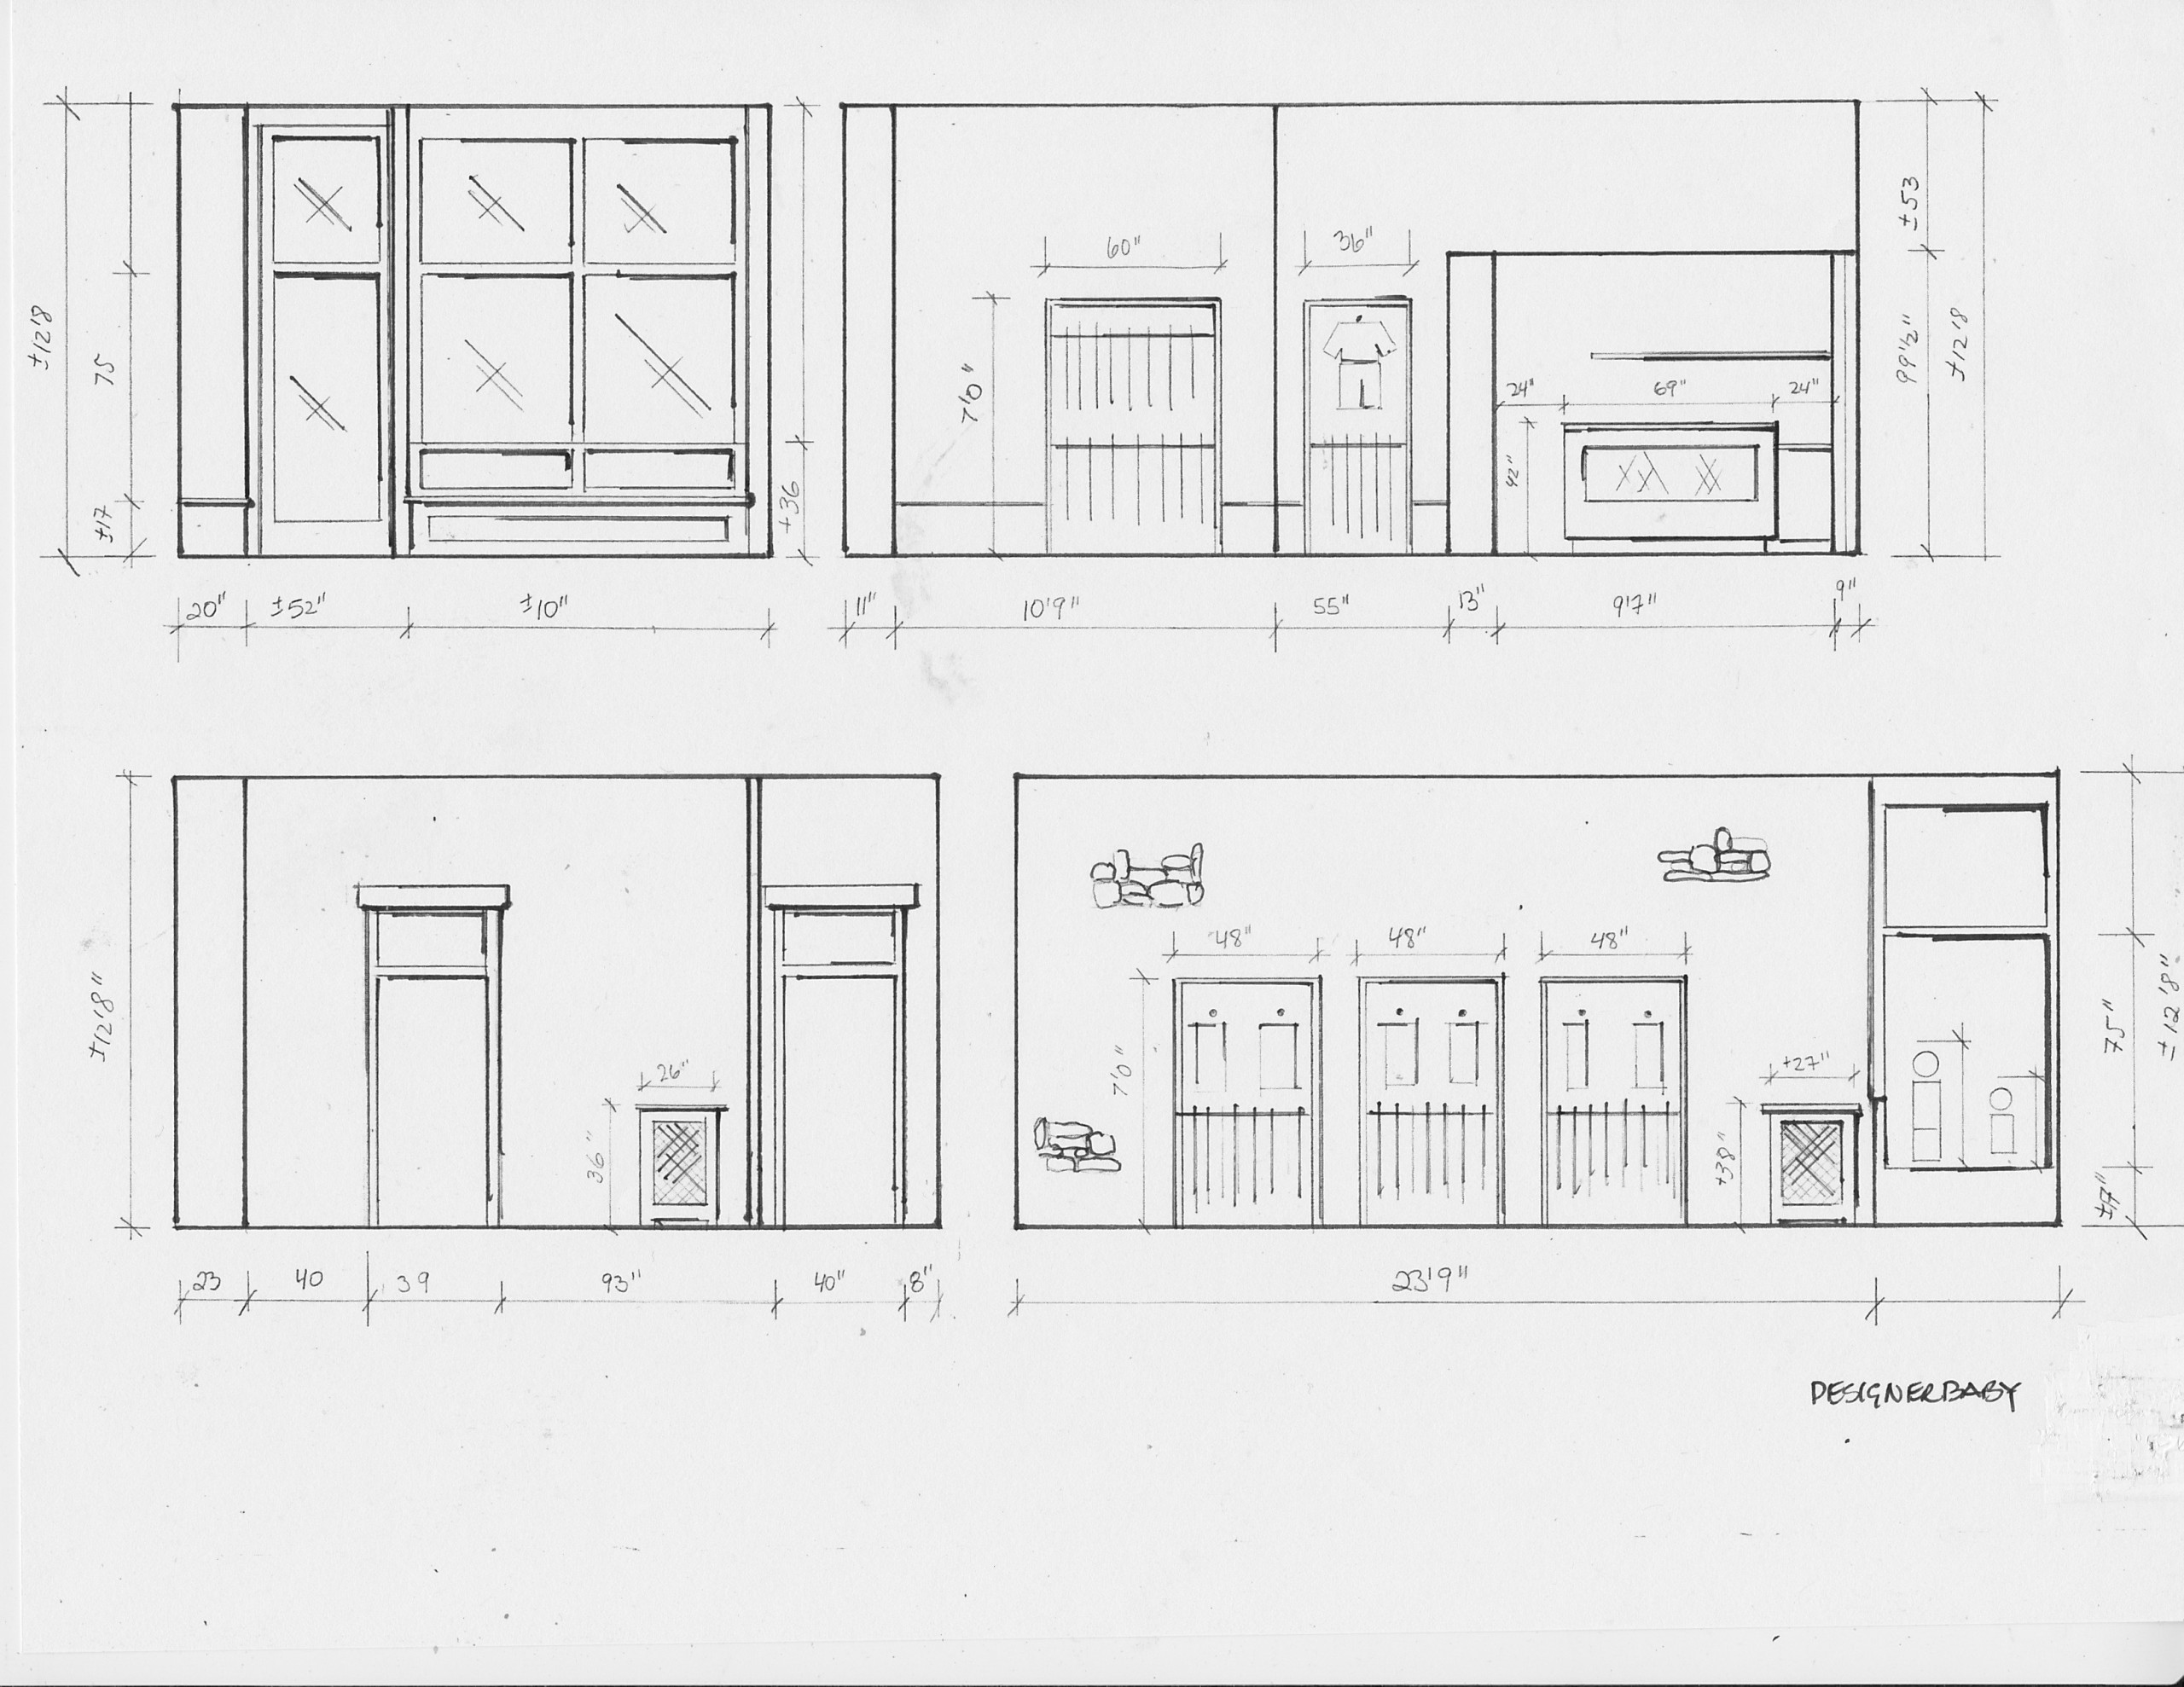 commercial space plans- retail store